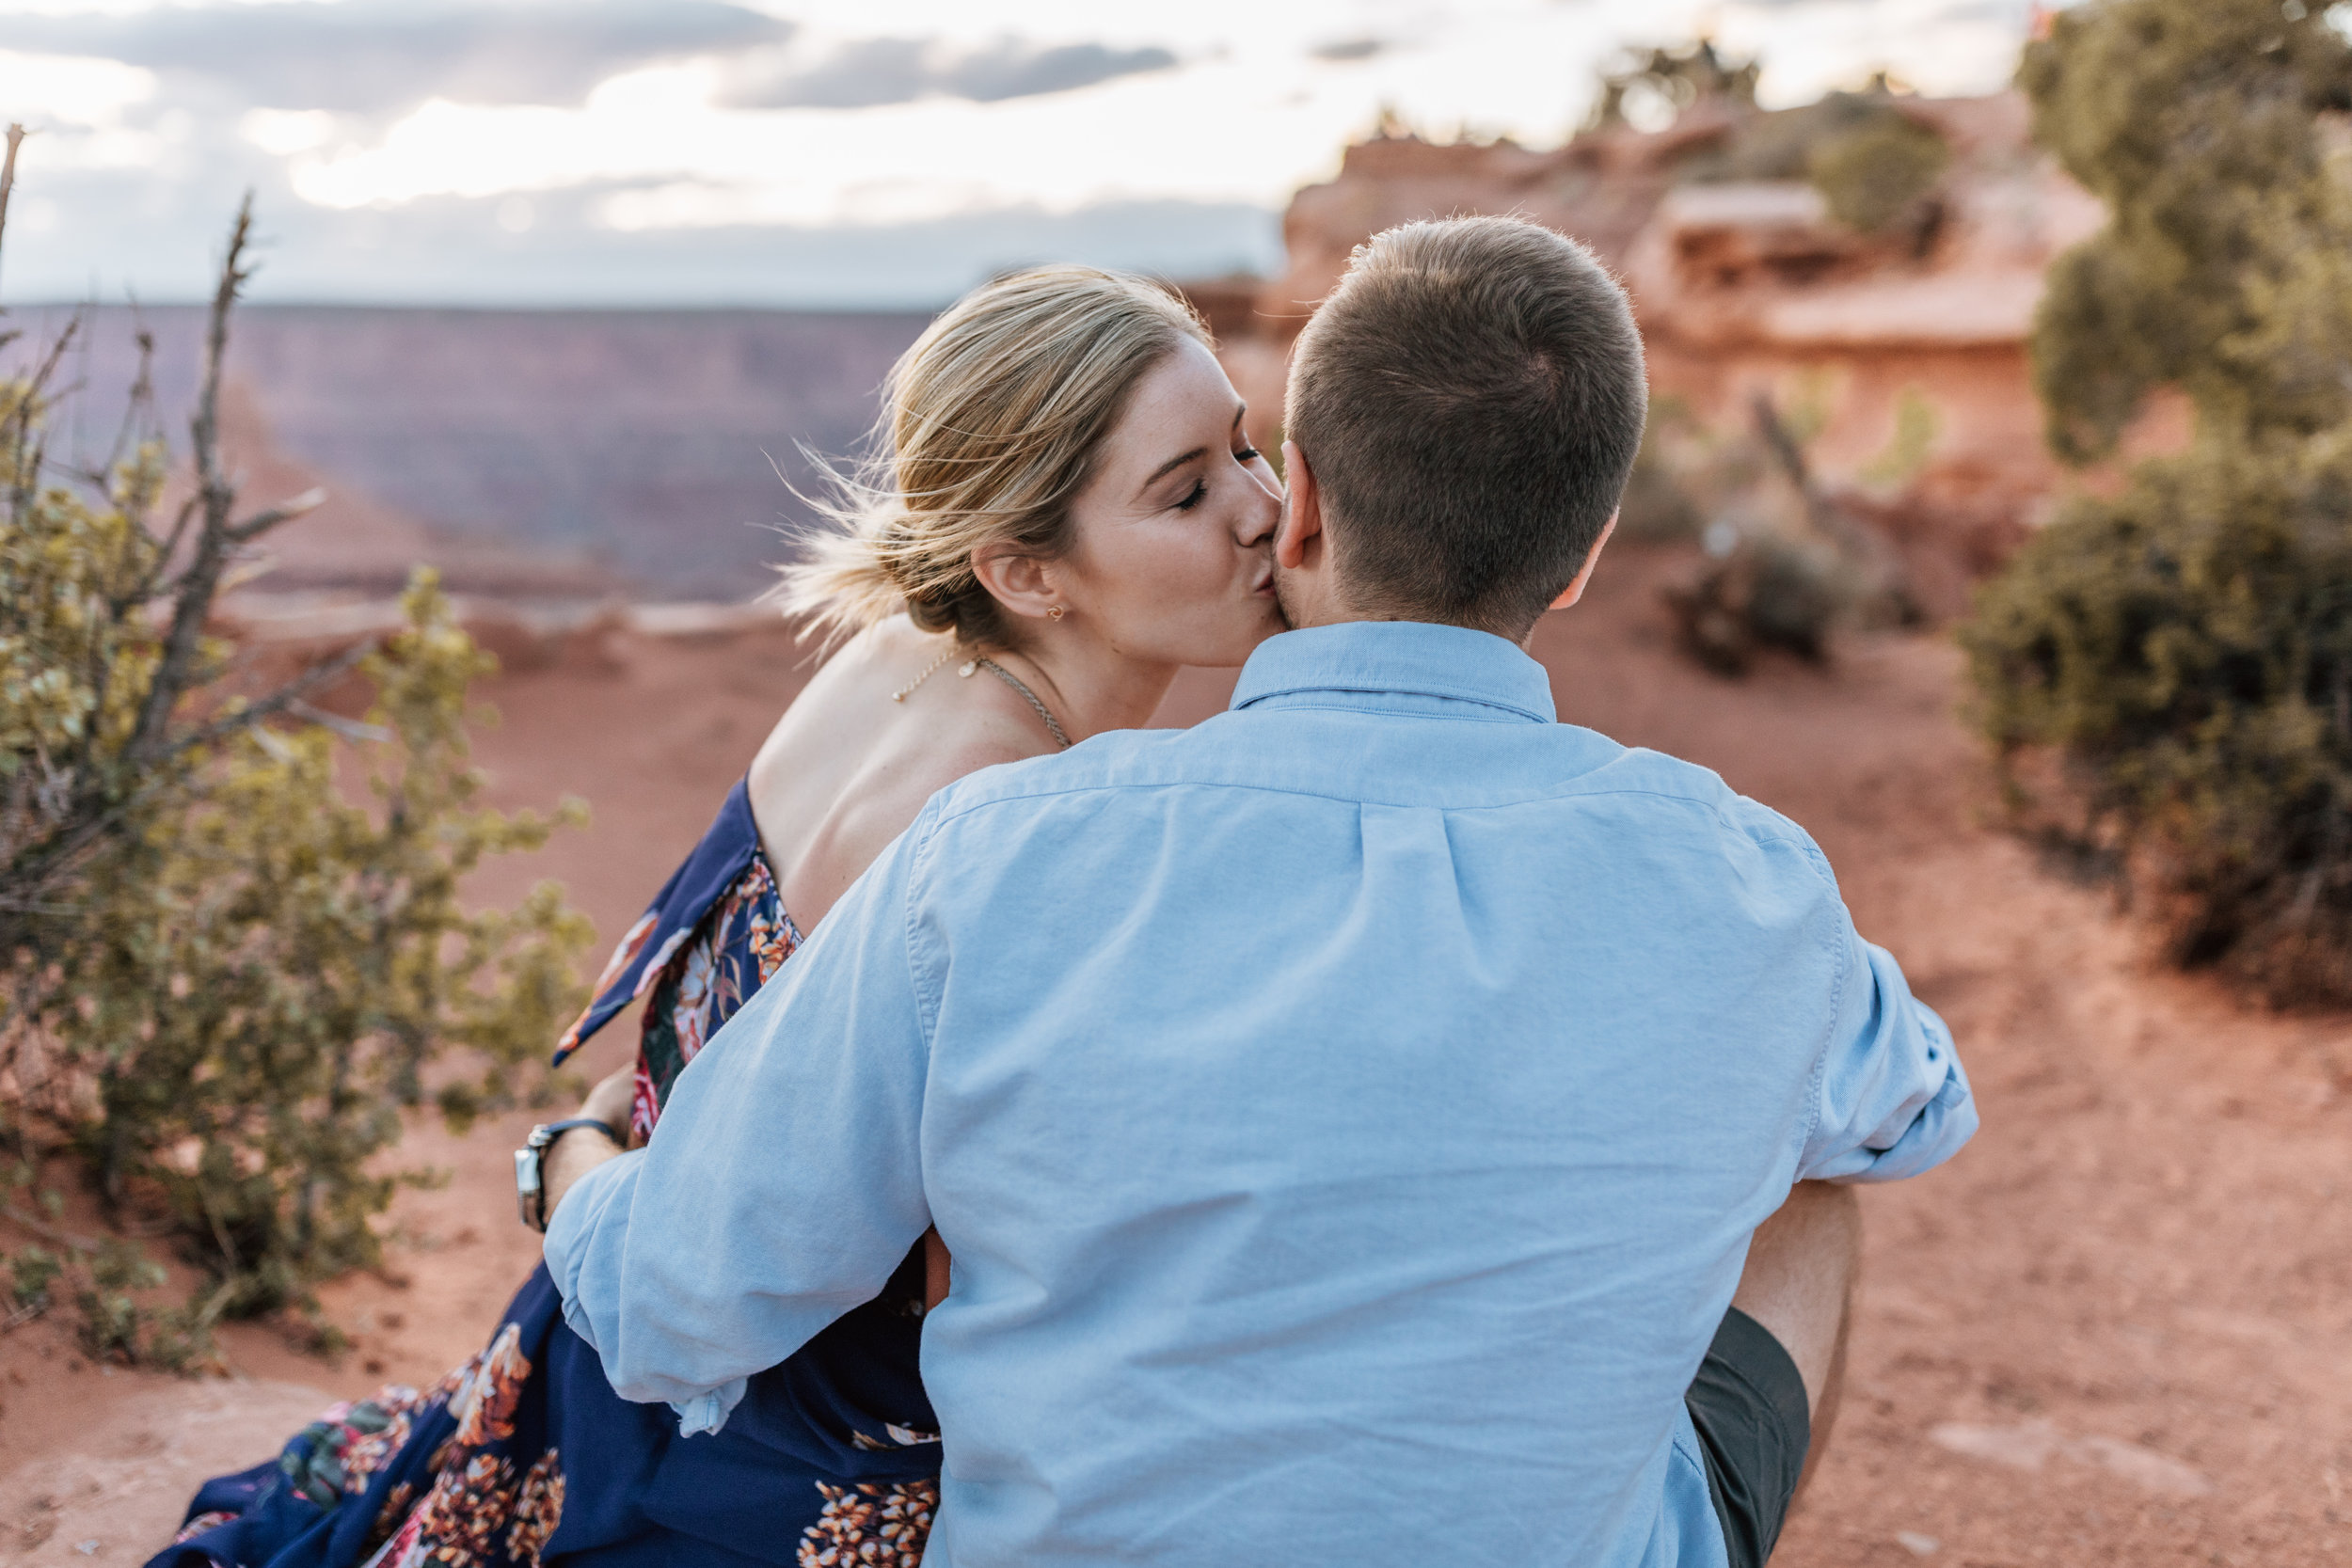 Emily + Pat Anniversary Adventurous bride, Bailey Dalton Photo, boho bride, Intimate Wedding photographer, Traveling Photographer, Utah Engagement photographer, Utah Wedding Photographer Bailey Dalton Photo 2016 - Utah Wedding Pho-61.jpg